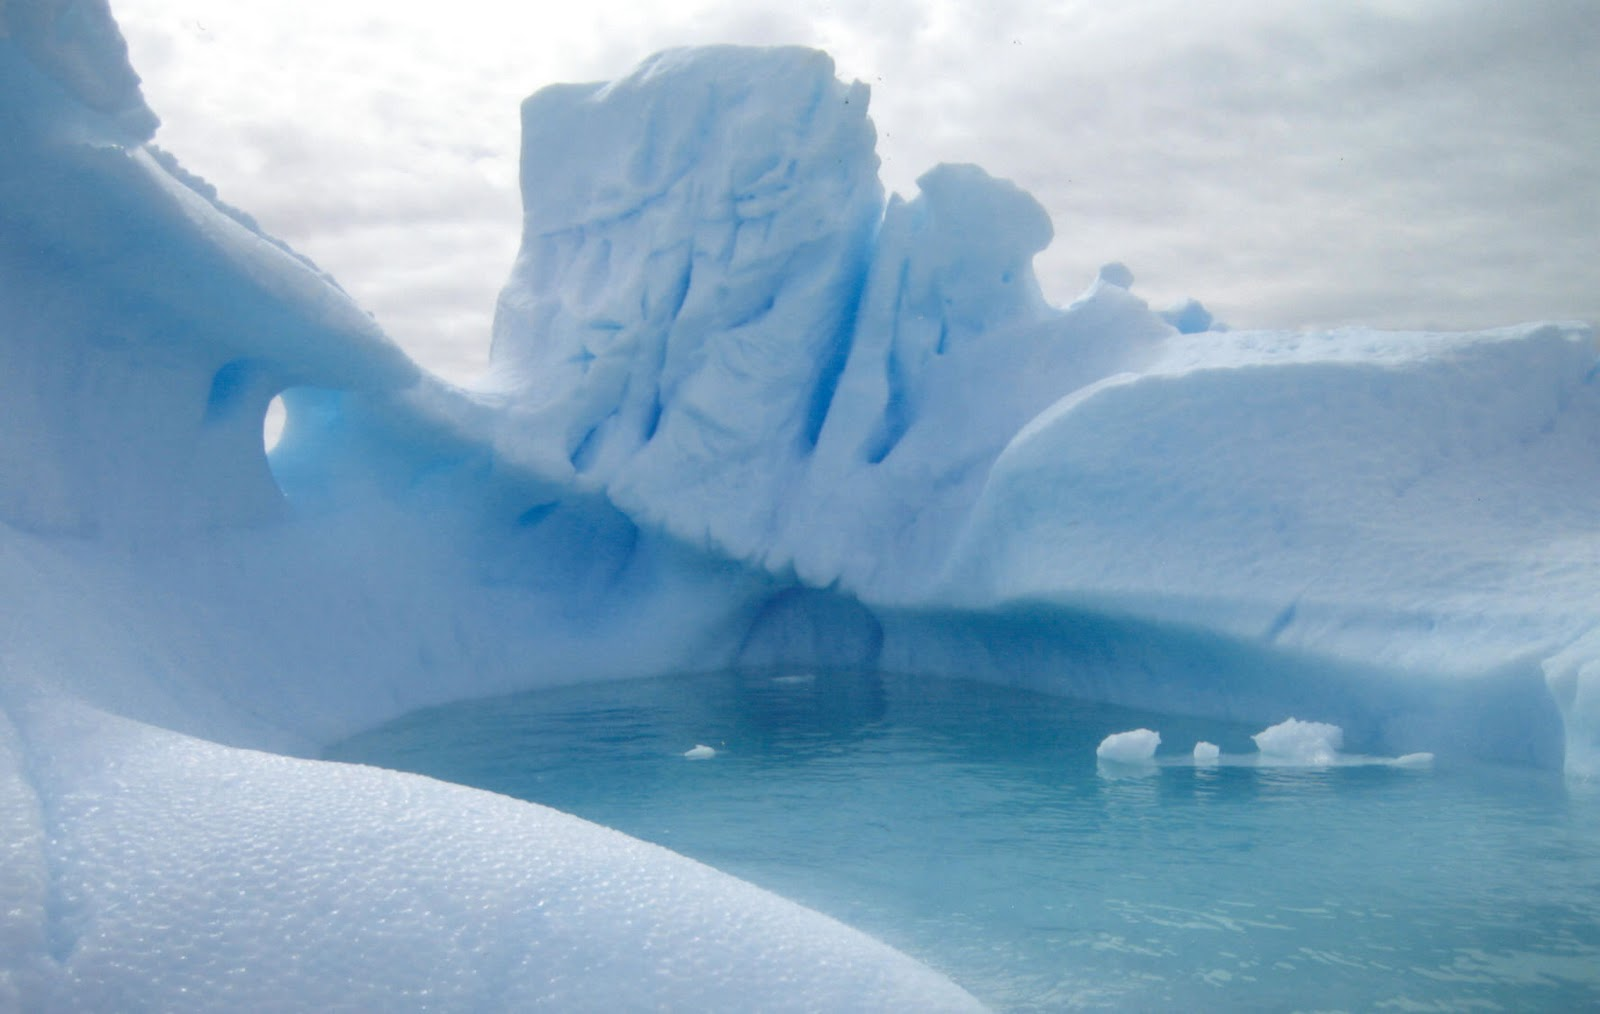 Antartica Icebergs Wallpapers pictures | cini clips